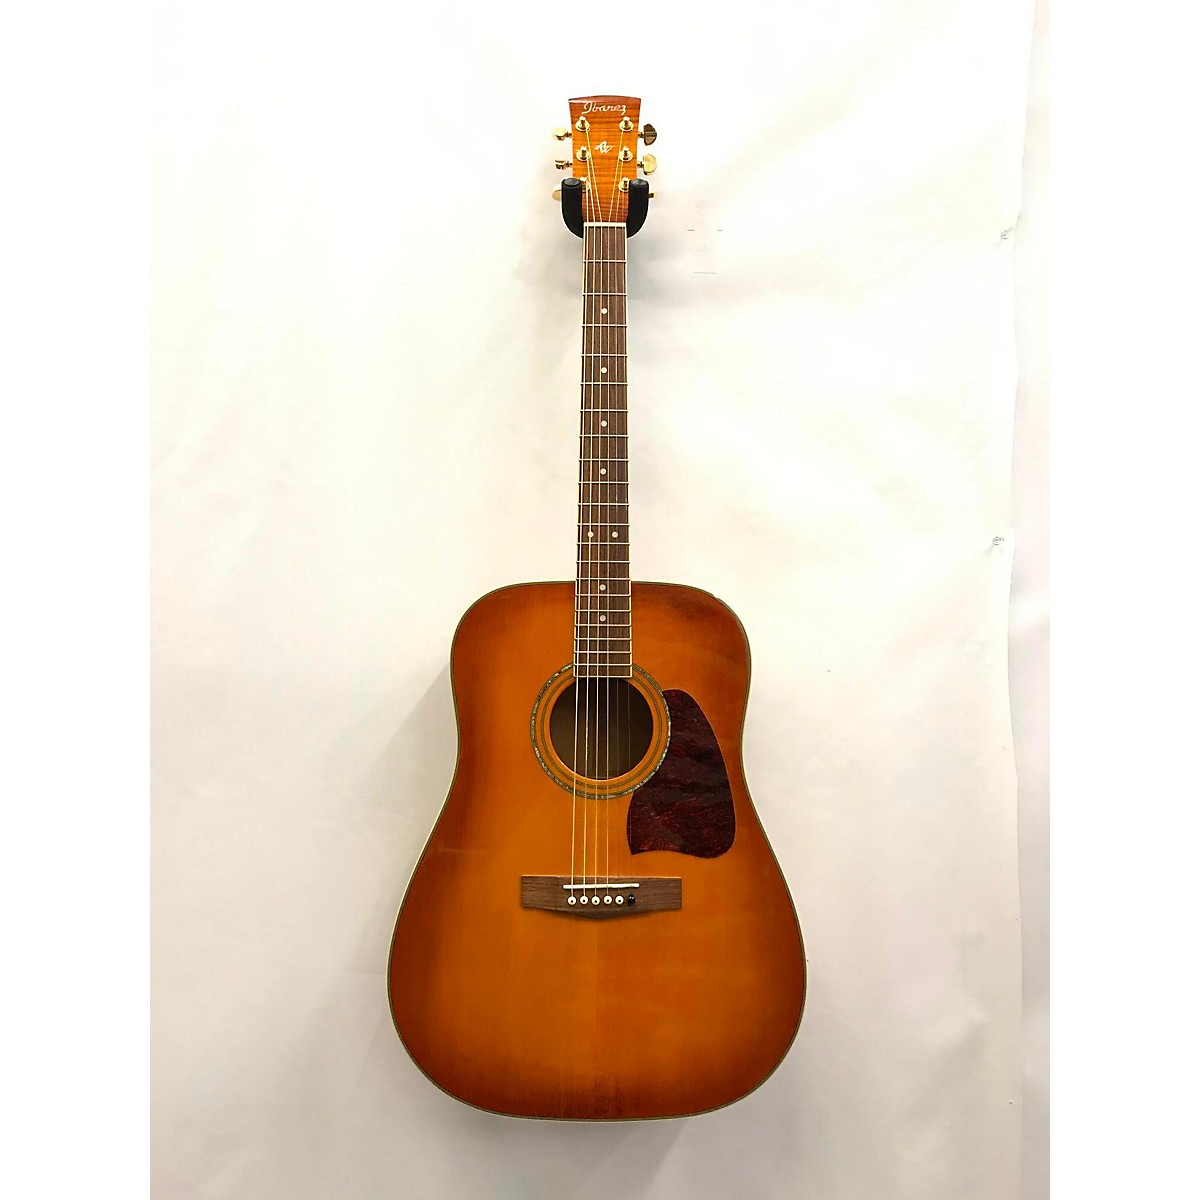 Ibanez AW200 Acoustic Guitar